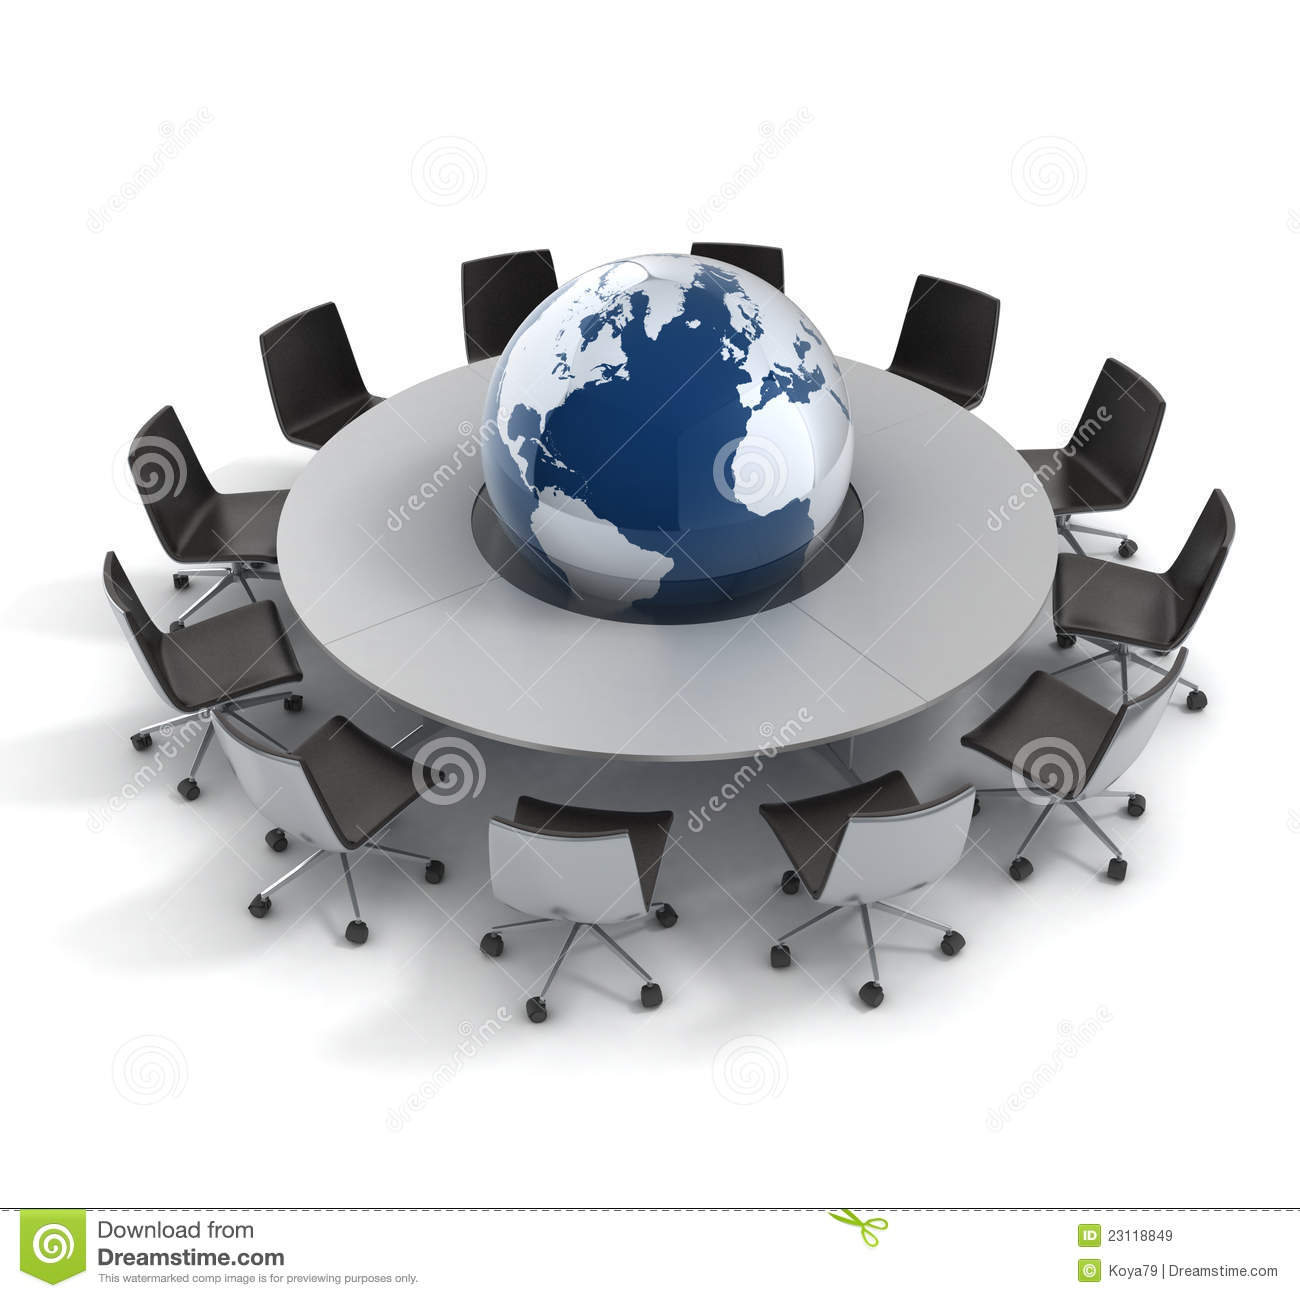 Round table meeting icon - Global Politics Diplomacy Strategy Environment Royalty